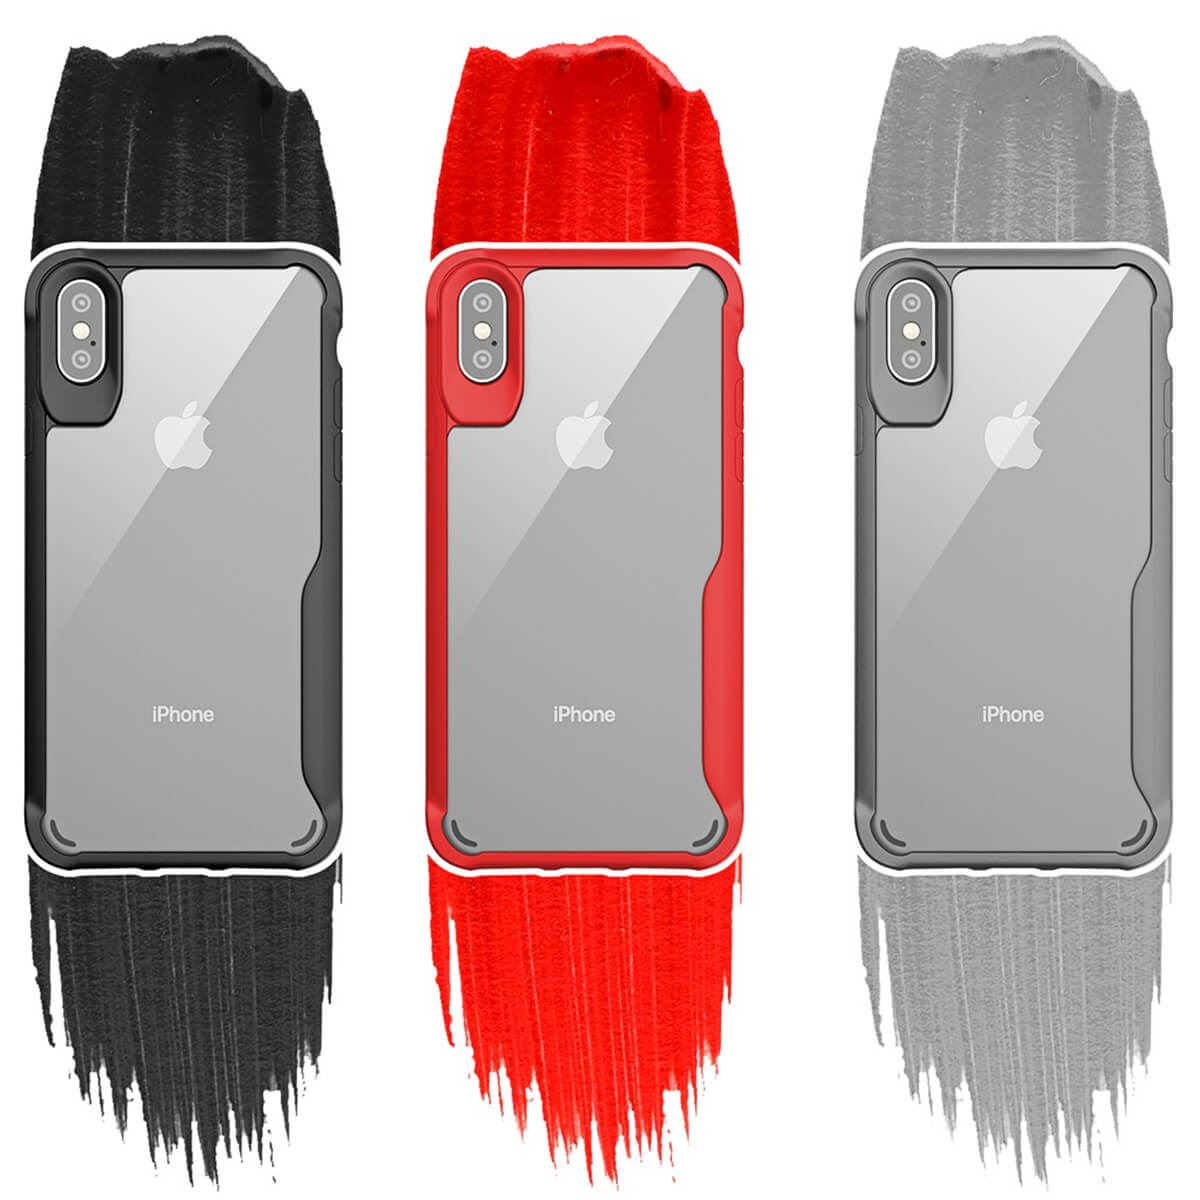 Thin-Shockproof-Case-For-Apple-iPhone-X-8-7-Plus-6s-Clear-Hard-Bumper-TPU-Cover thumbnail 14